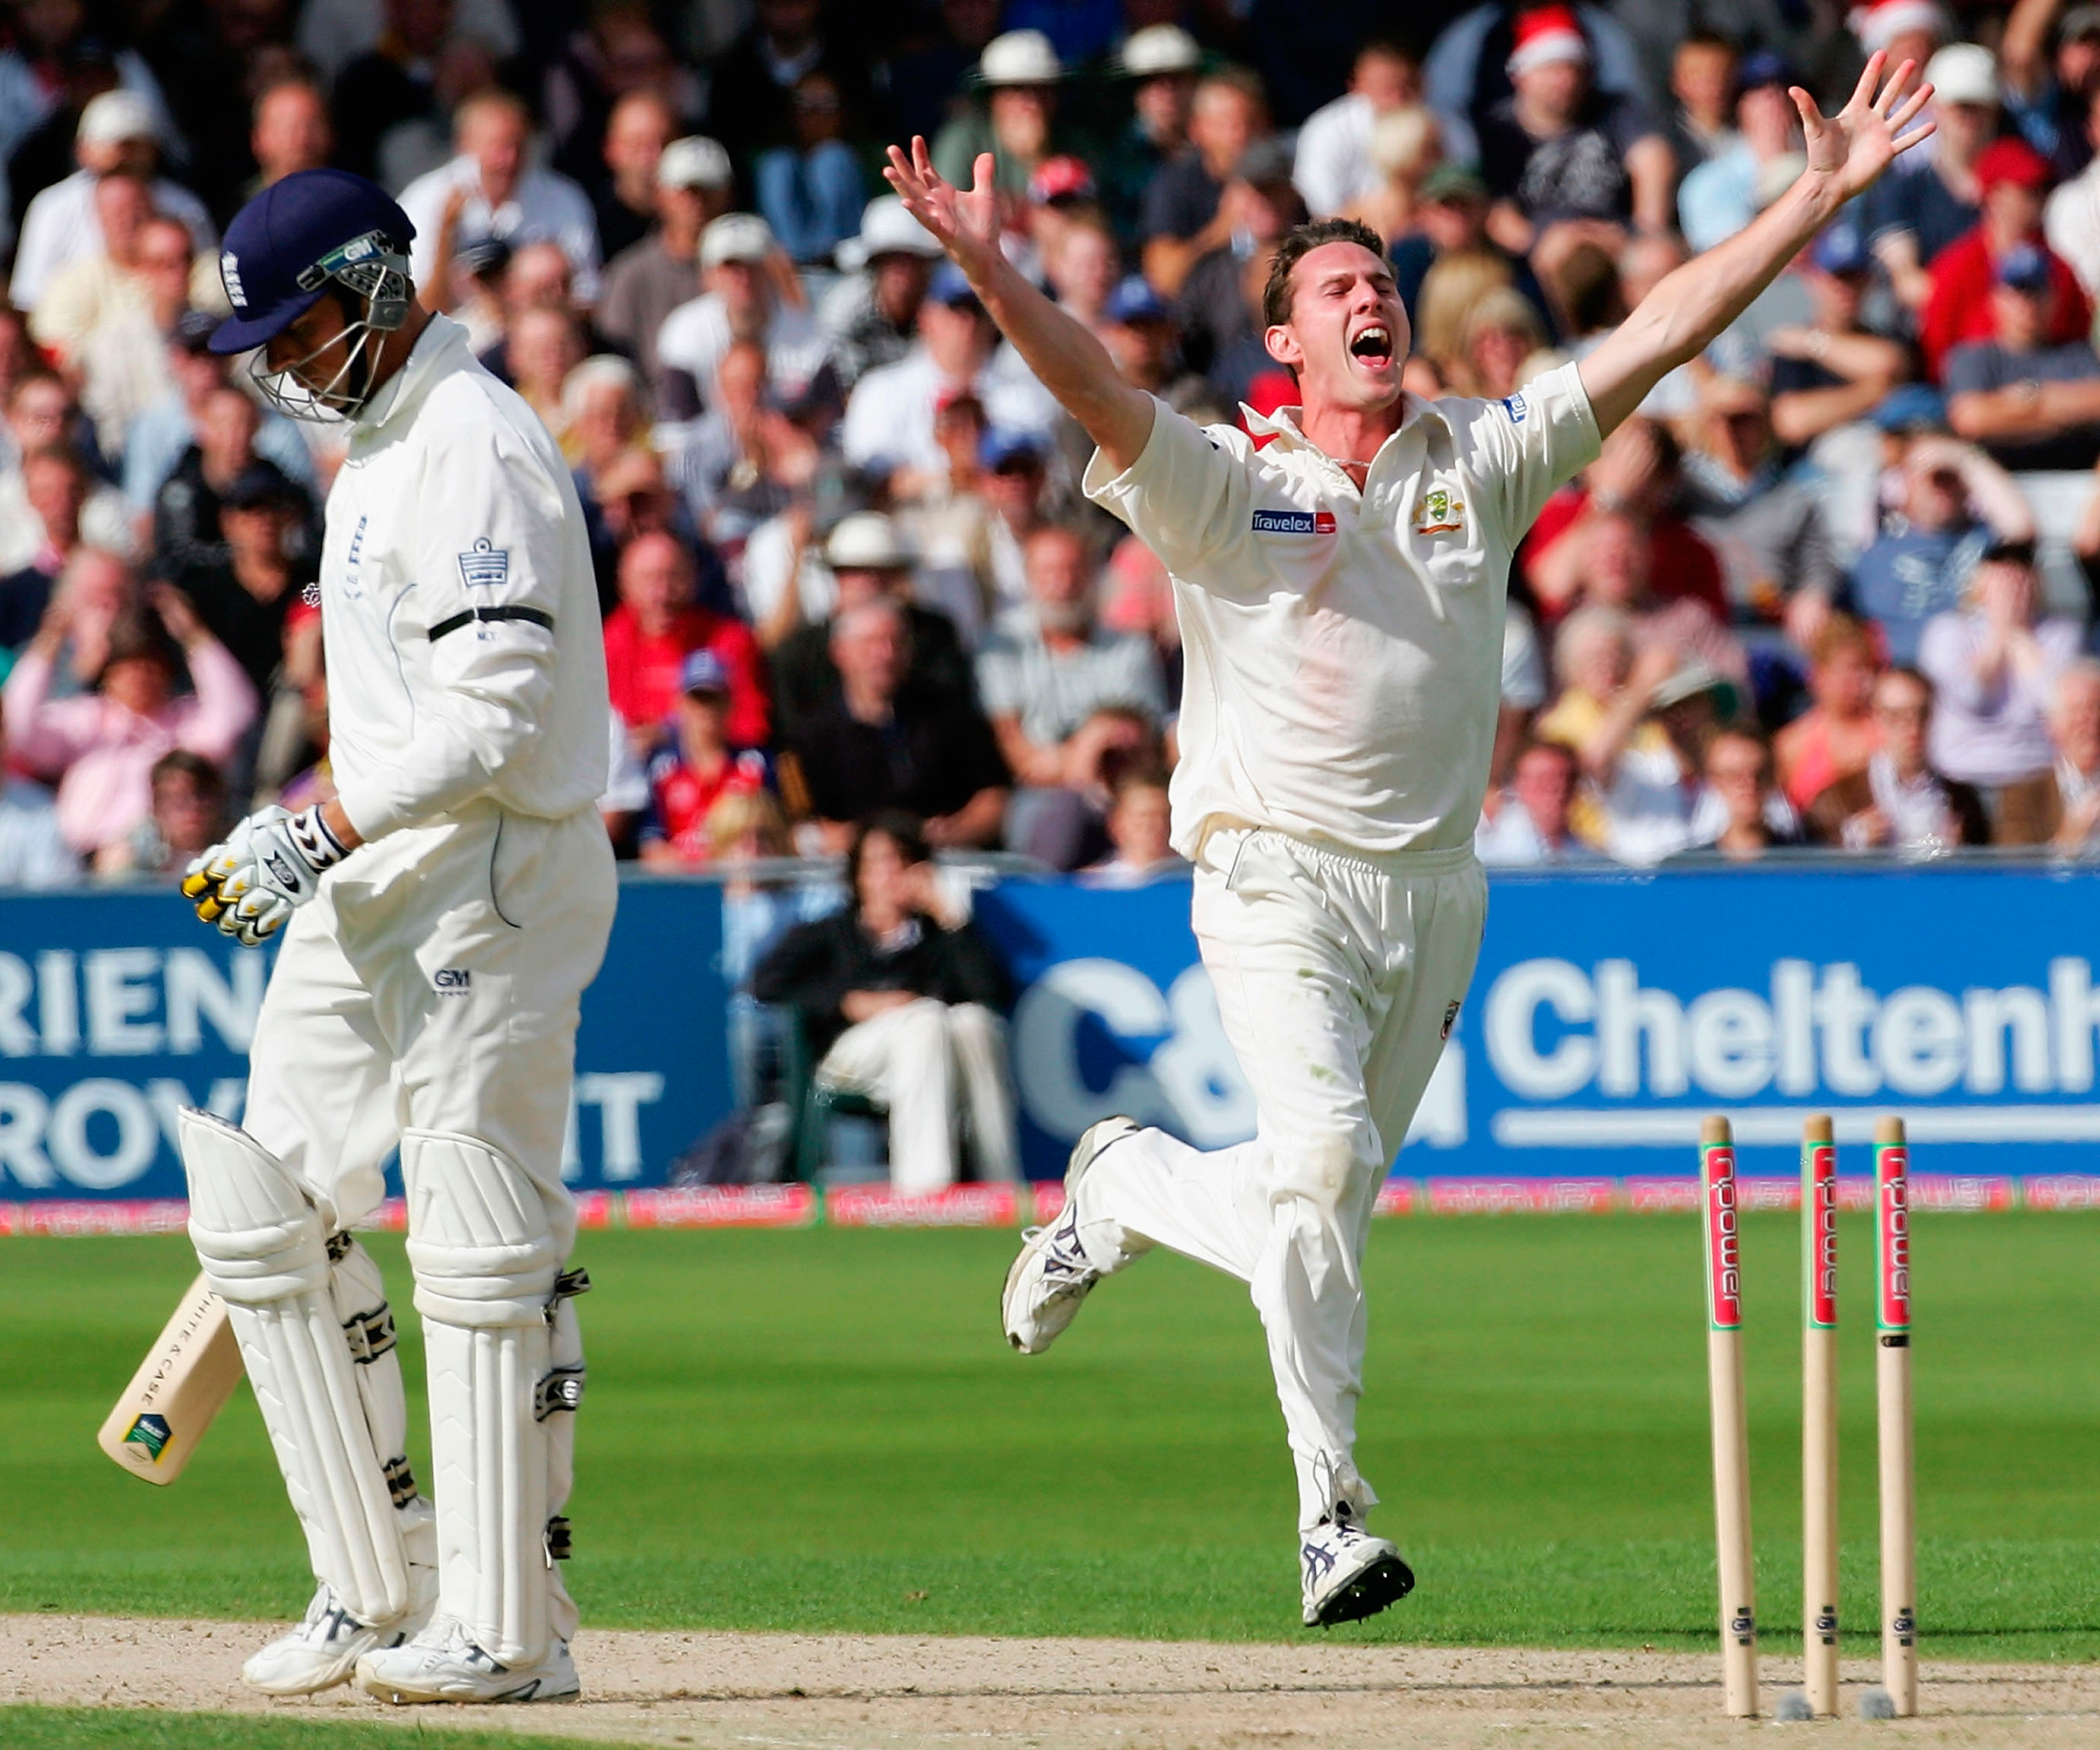 Tait celebrates his first Test wicket, that of Marcus Trescothick in 2005 // Getty